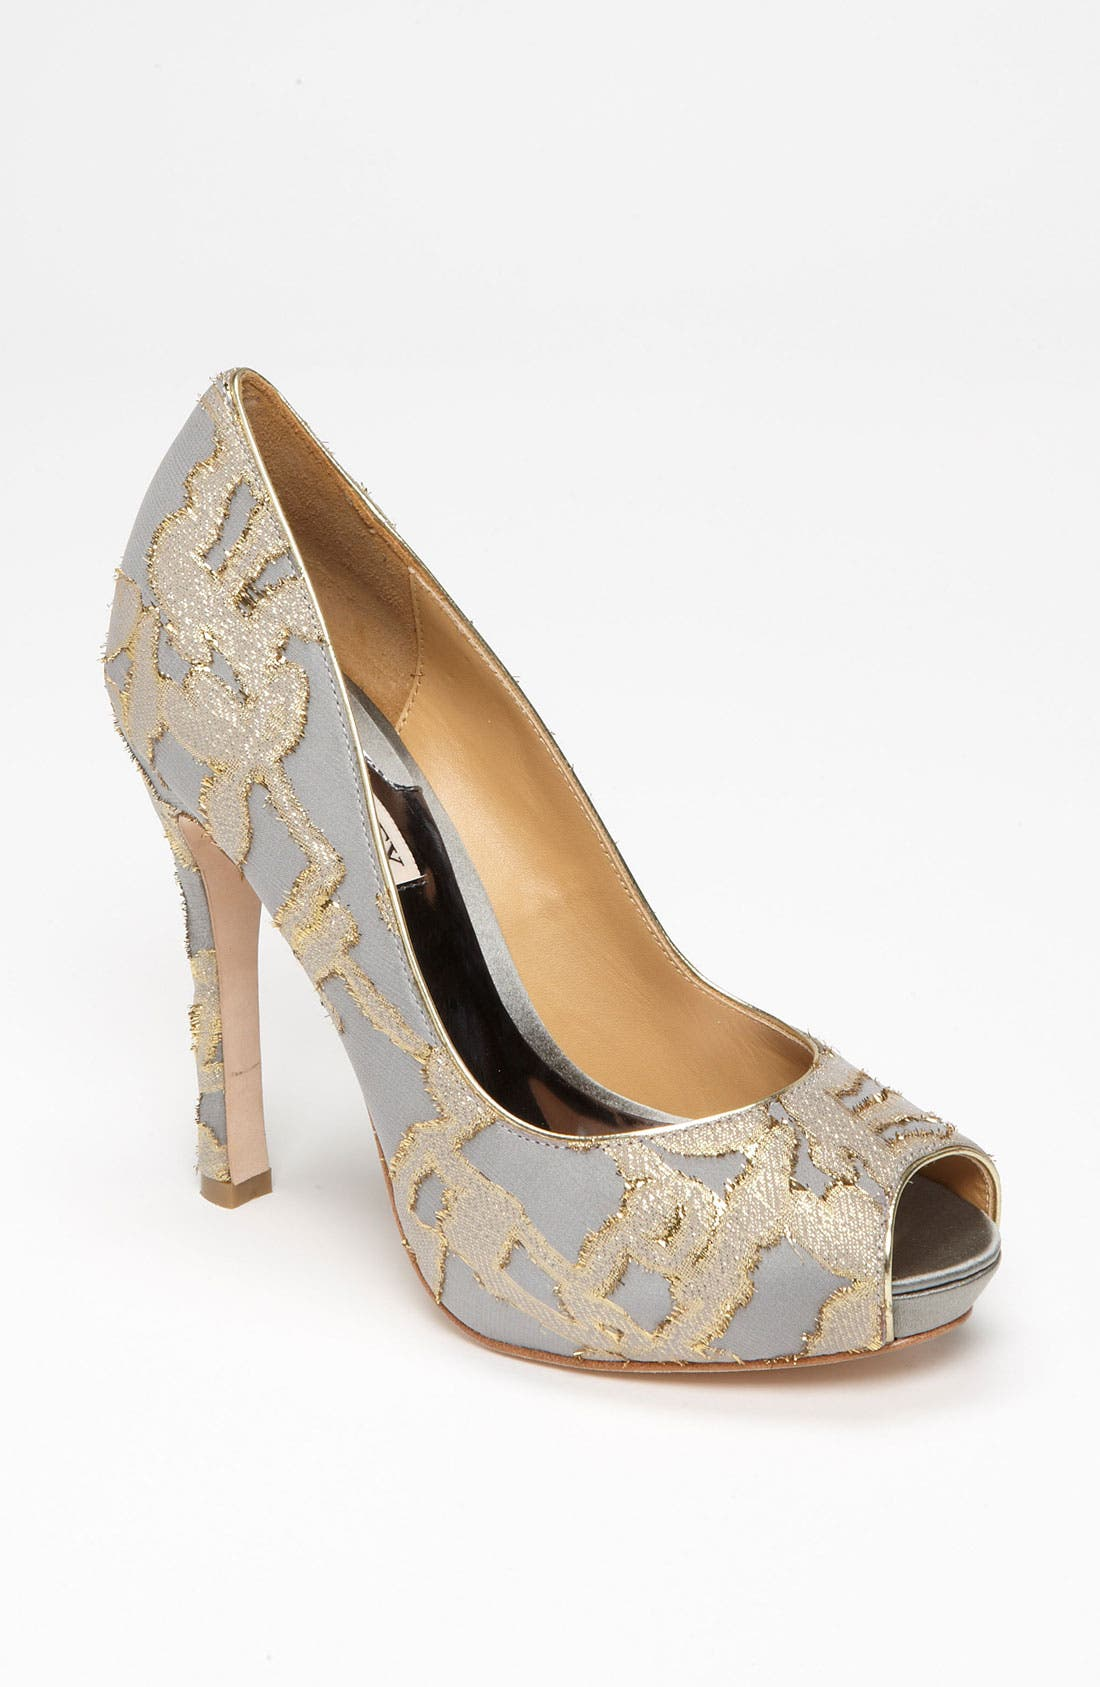 Alternate Image 1 Selected - Badgley Mischka 'Roxie' Pump